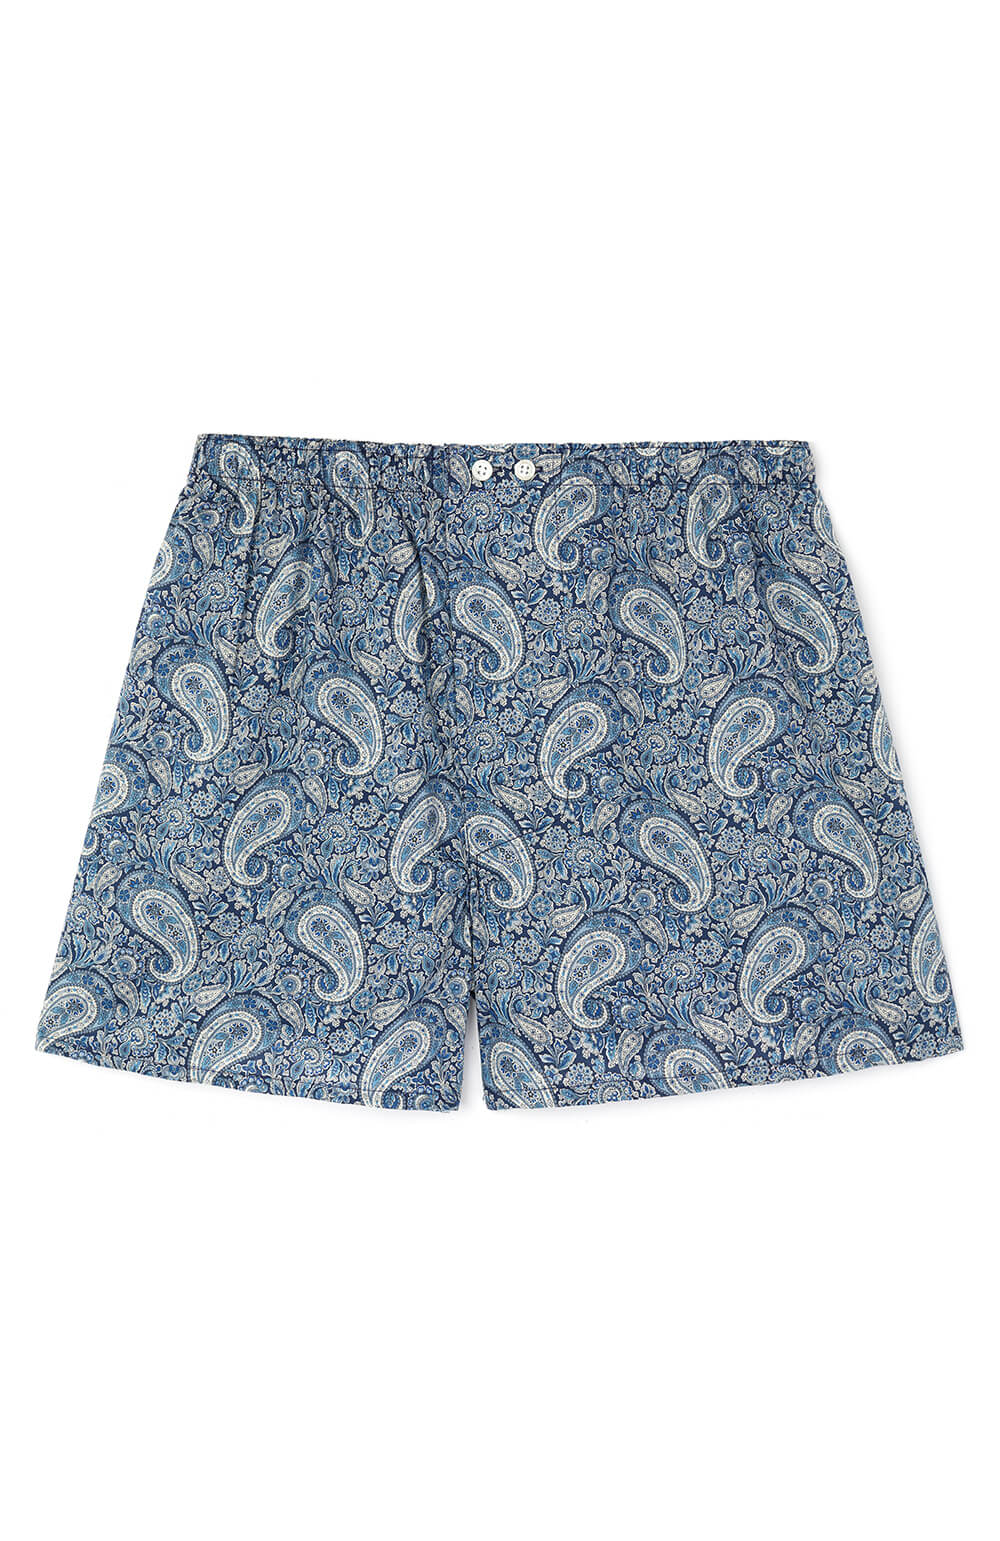 Fine Cotton Boxer Shorts made with Liberty Fabric (lmbb) - Felix Blue